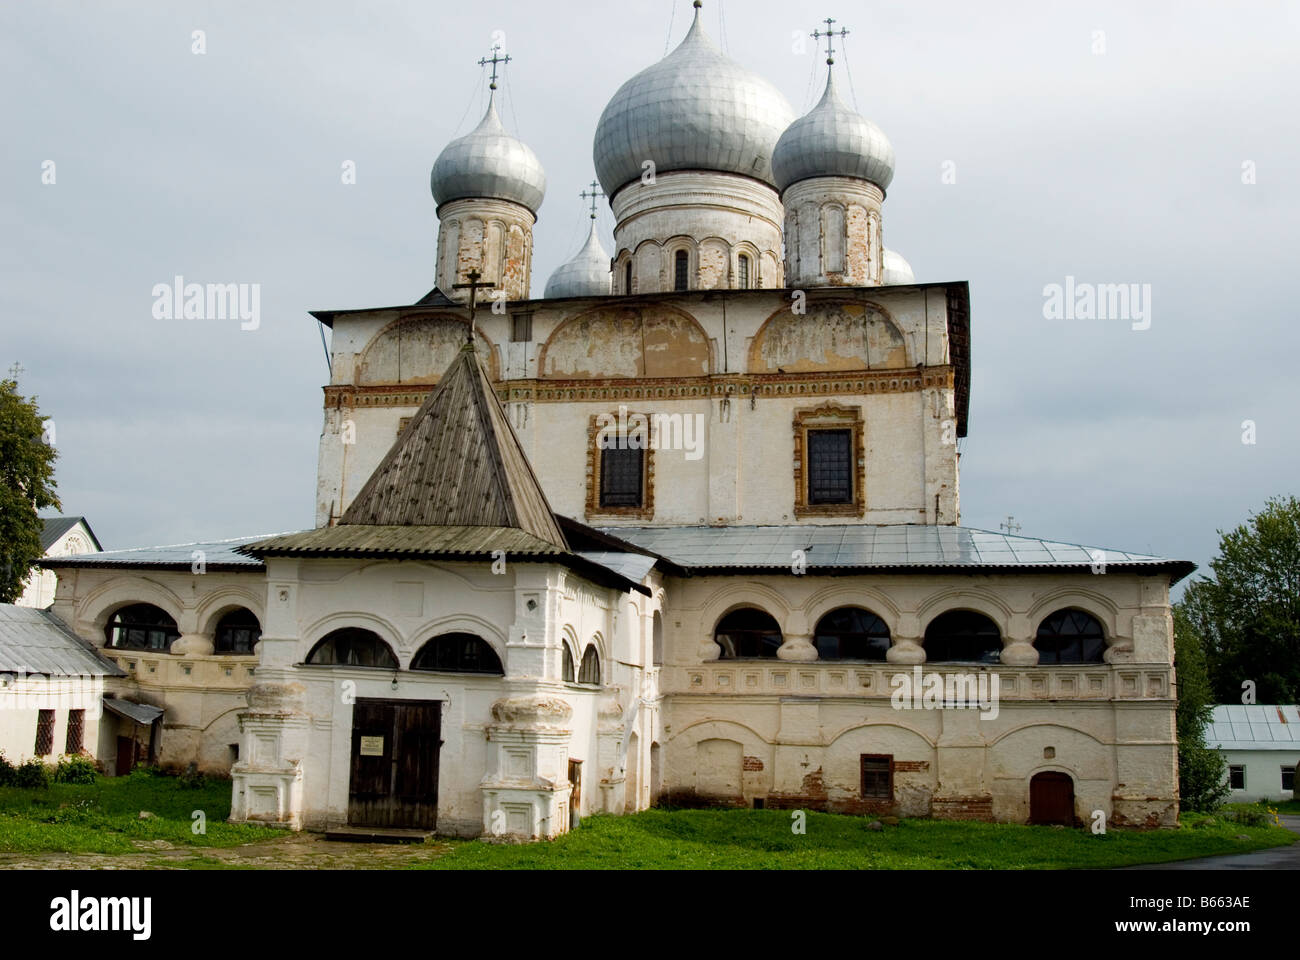 Veliky Novgorod: attractions. Description and photo 2